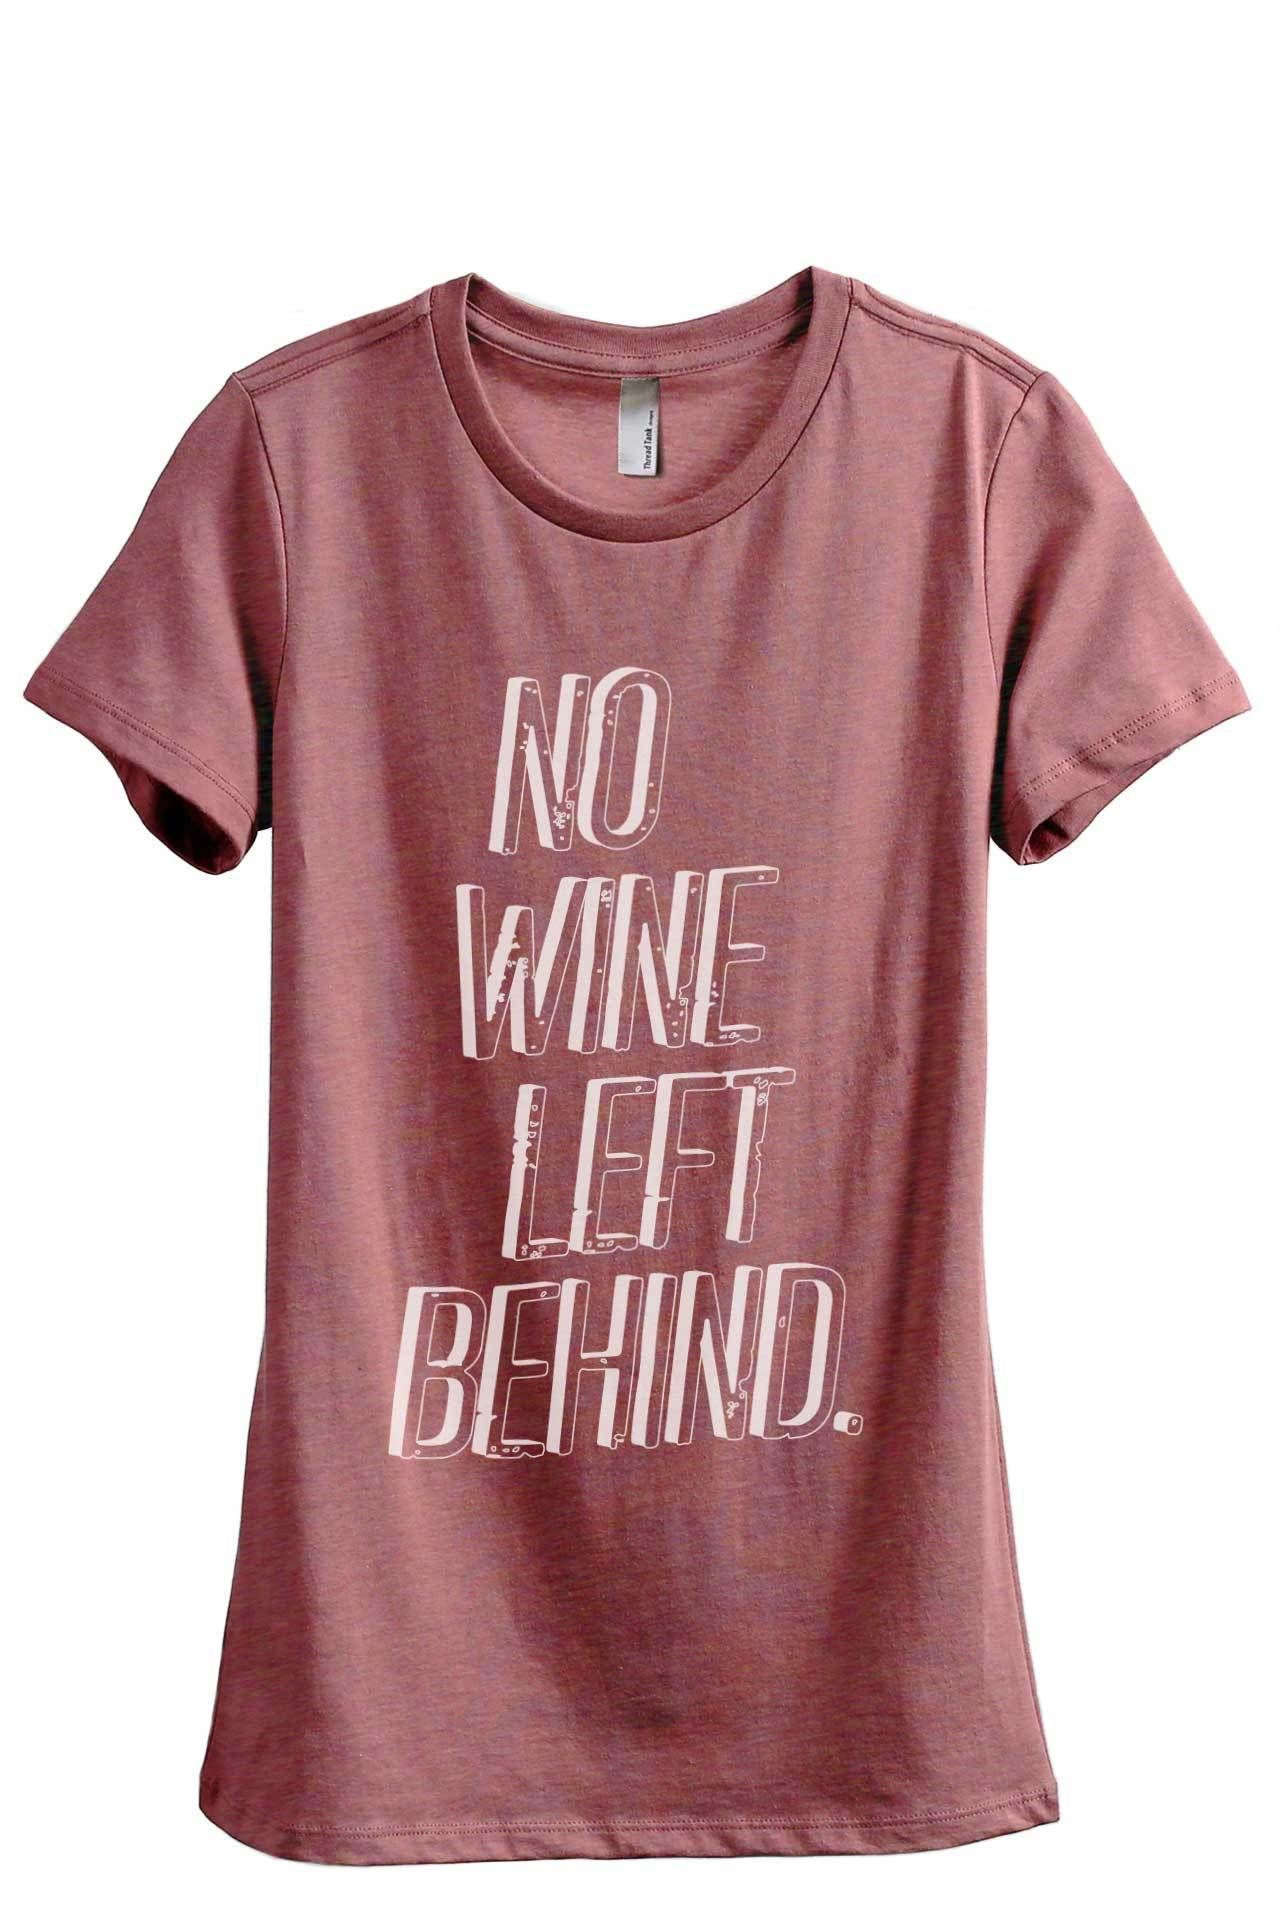 Pin By Anonymous On T Shirt Design Insp In 2020 Leave Behind Shirt Details Graphic Top